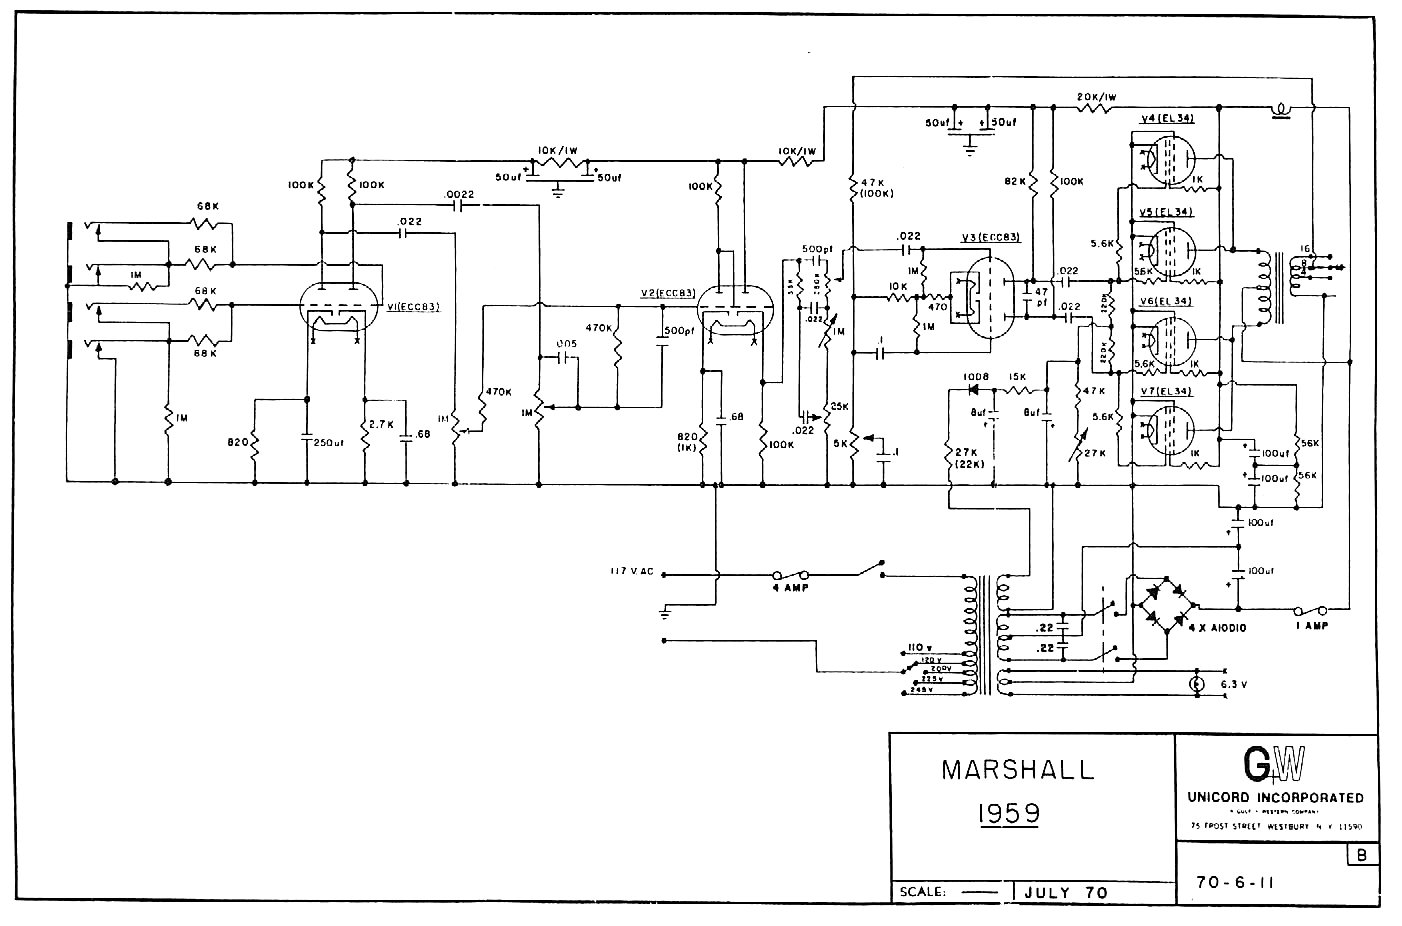 marshall amp layout, marshall 1959 layout, marshall 1959 back, marshall s manual, marshall 2210 footswitch, marshall 2061x, marshall 1959slp, marshall 1987 circuit, on marshall 1959 schematic